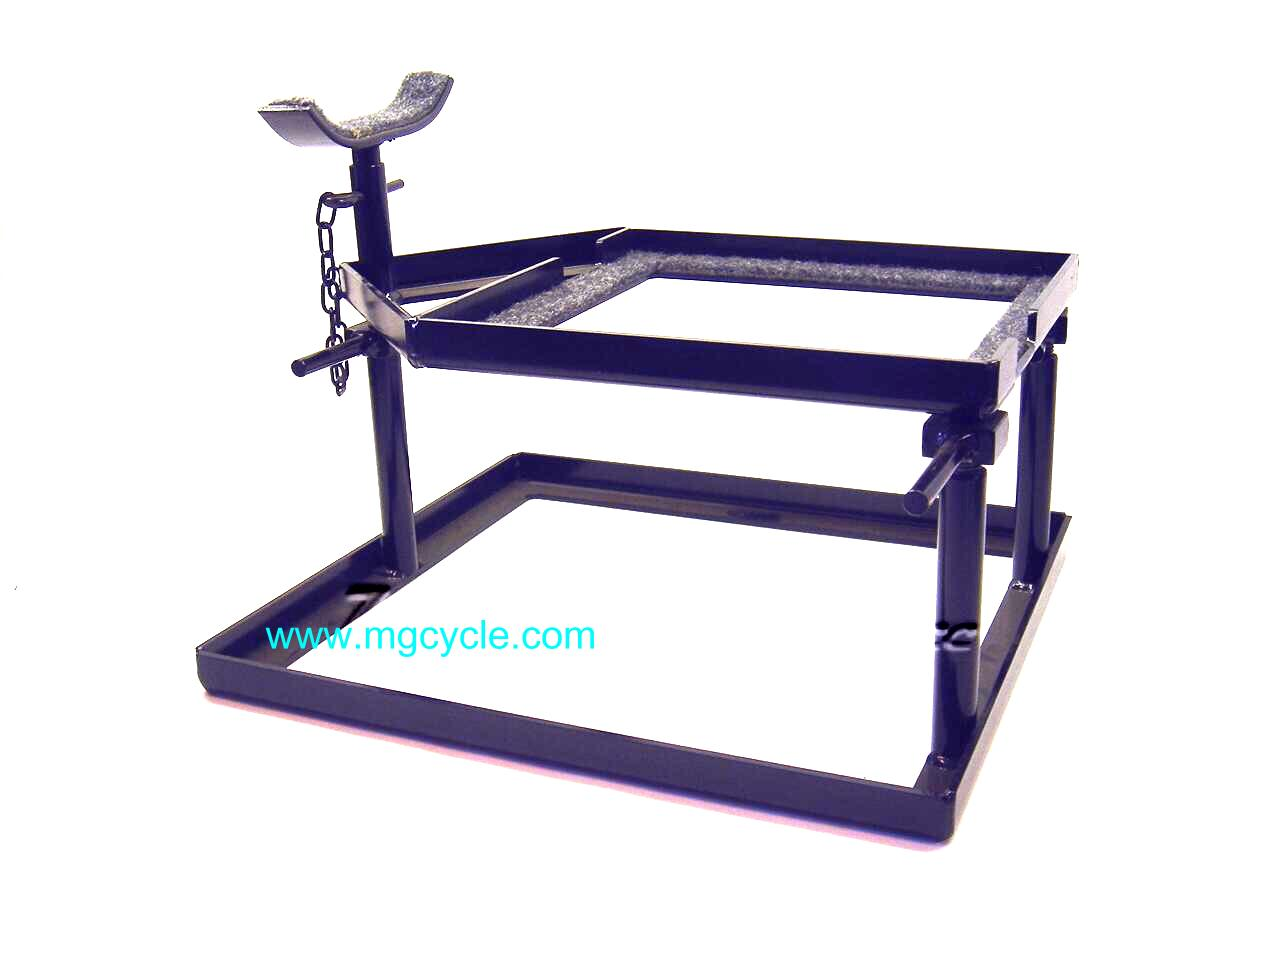 Workshop engine stand